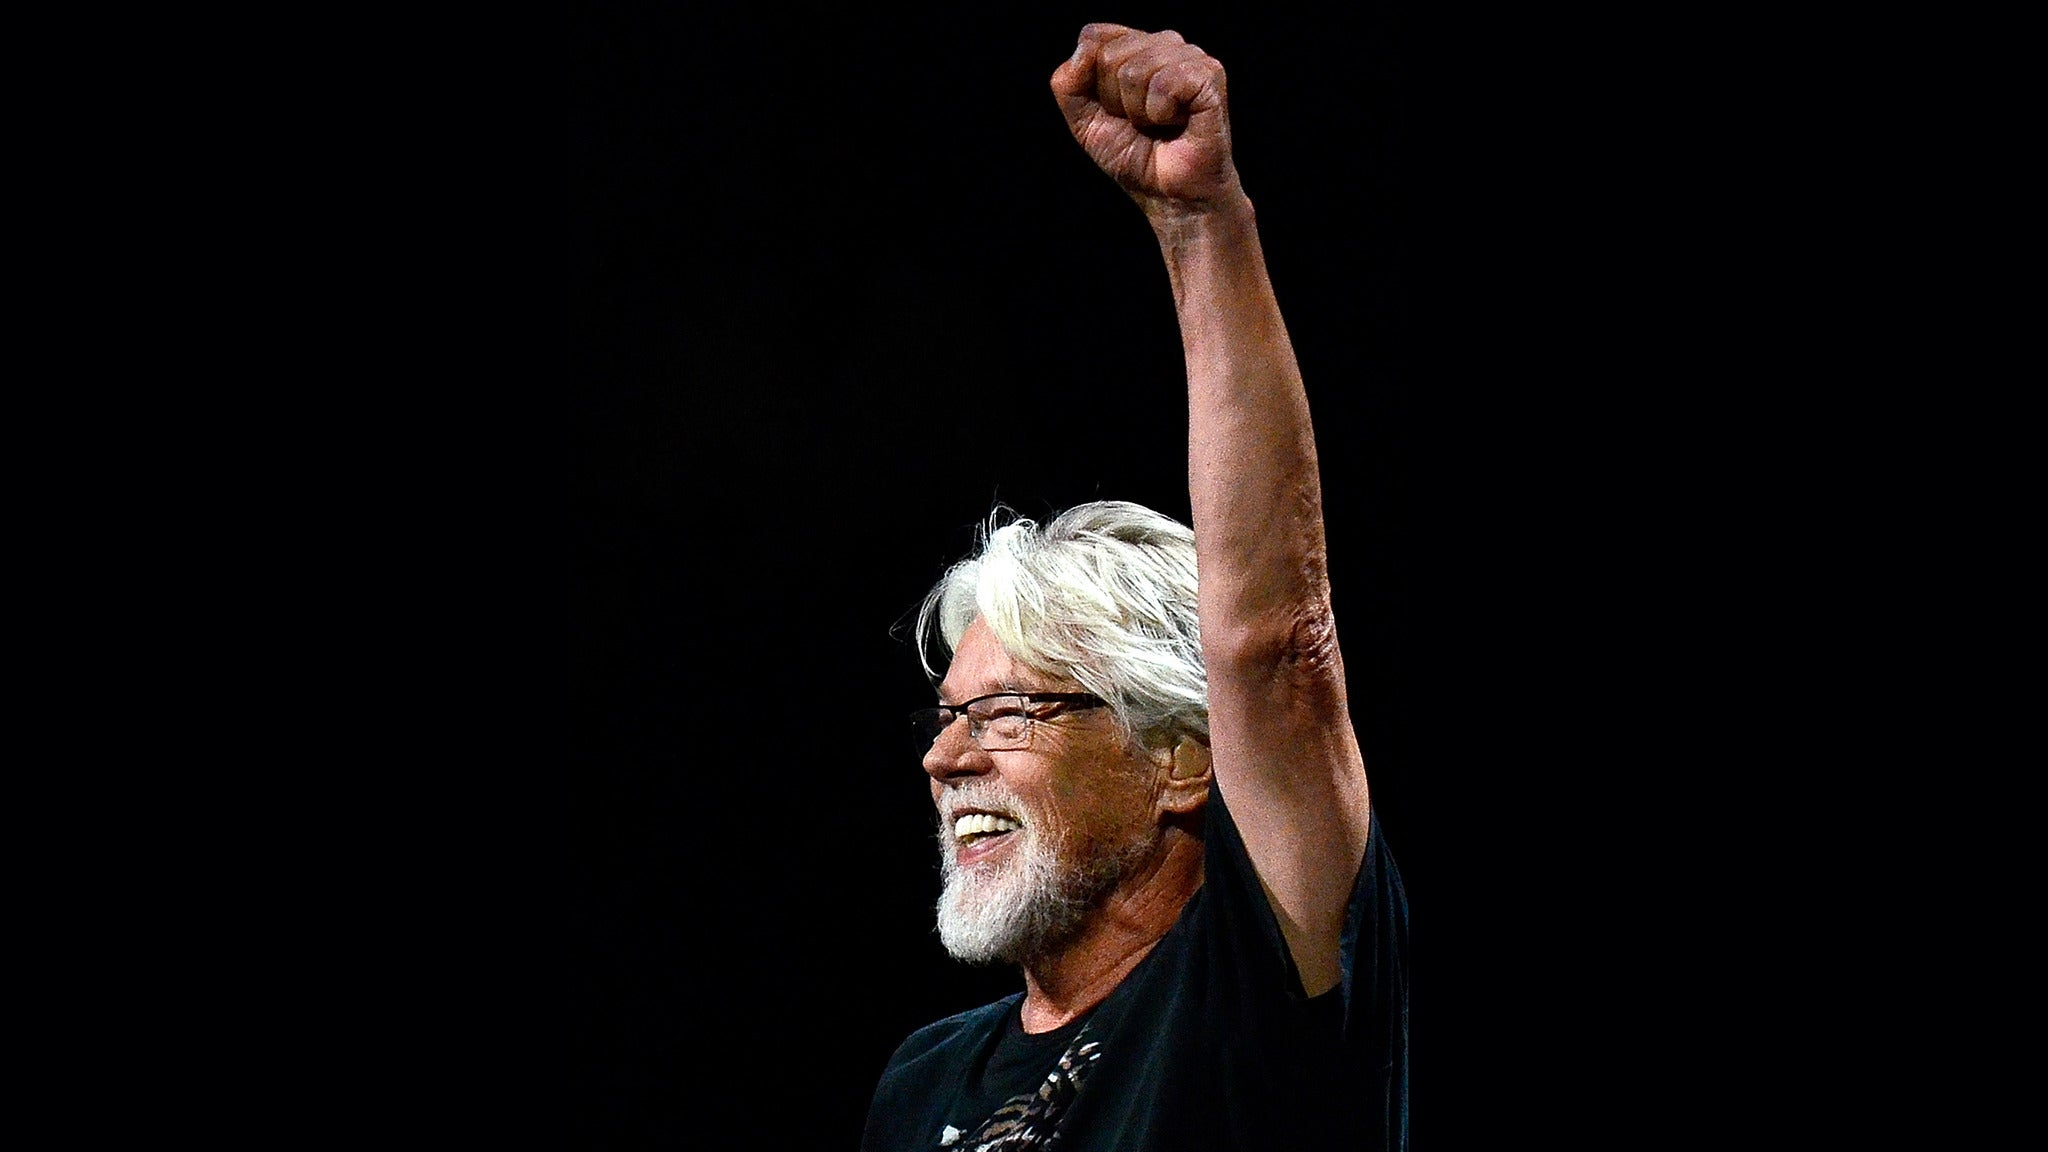 Bob Seger w/ Silver Bullet Band at Infinite Energy Center - Duluth, GA 30097